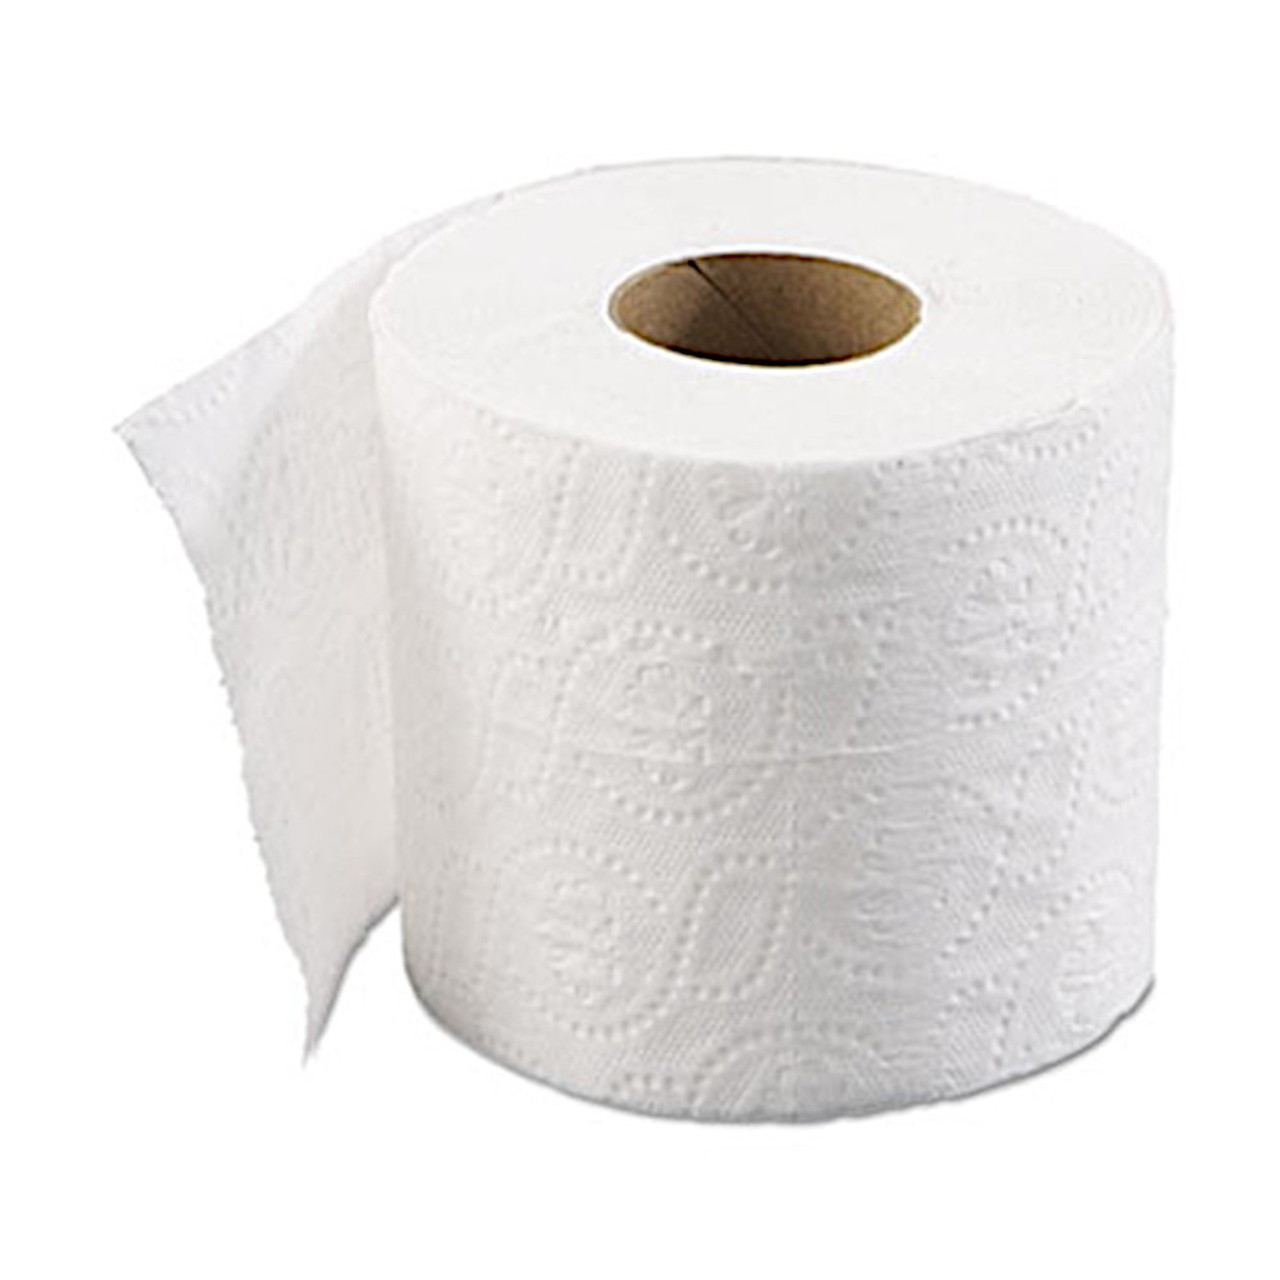 A 2-ply toilet tissue with 500 sheets per roll.